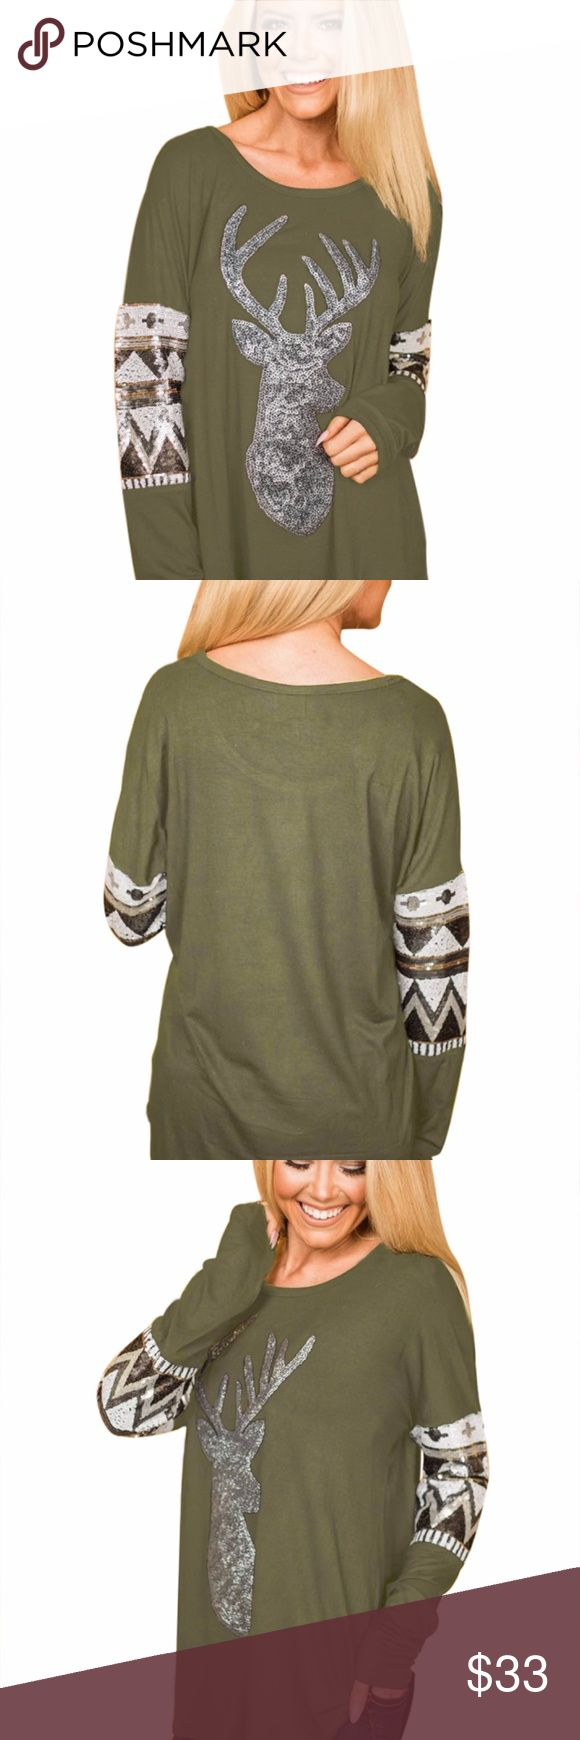 New! Loose Sequin Christmas Reindeer Top This lightweight Loose Sequin Christmas Reindeer Top is perfect for those carefree autumn days! Get this super comfy and festive top with sequin deer head and decorative sequin bands around the arm. Scoop neck, long sleeve and rounded hemline in a loose fit silhouette.   These run really big so Small is more like Medium, Medium like a Large and Large like XL  Fast shipping 5***** seller buy with confidence Smoke Free Pet Free Home <3 Tops Tees - Long…